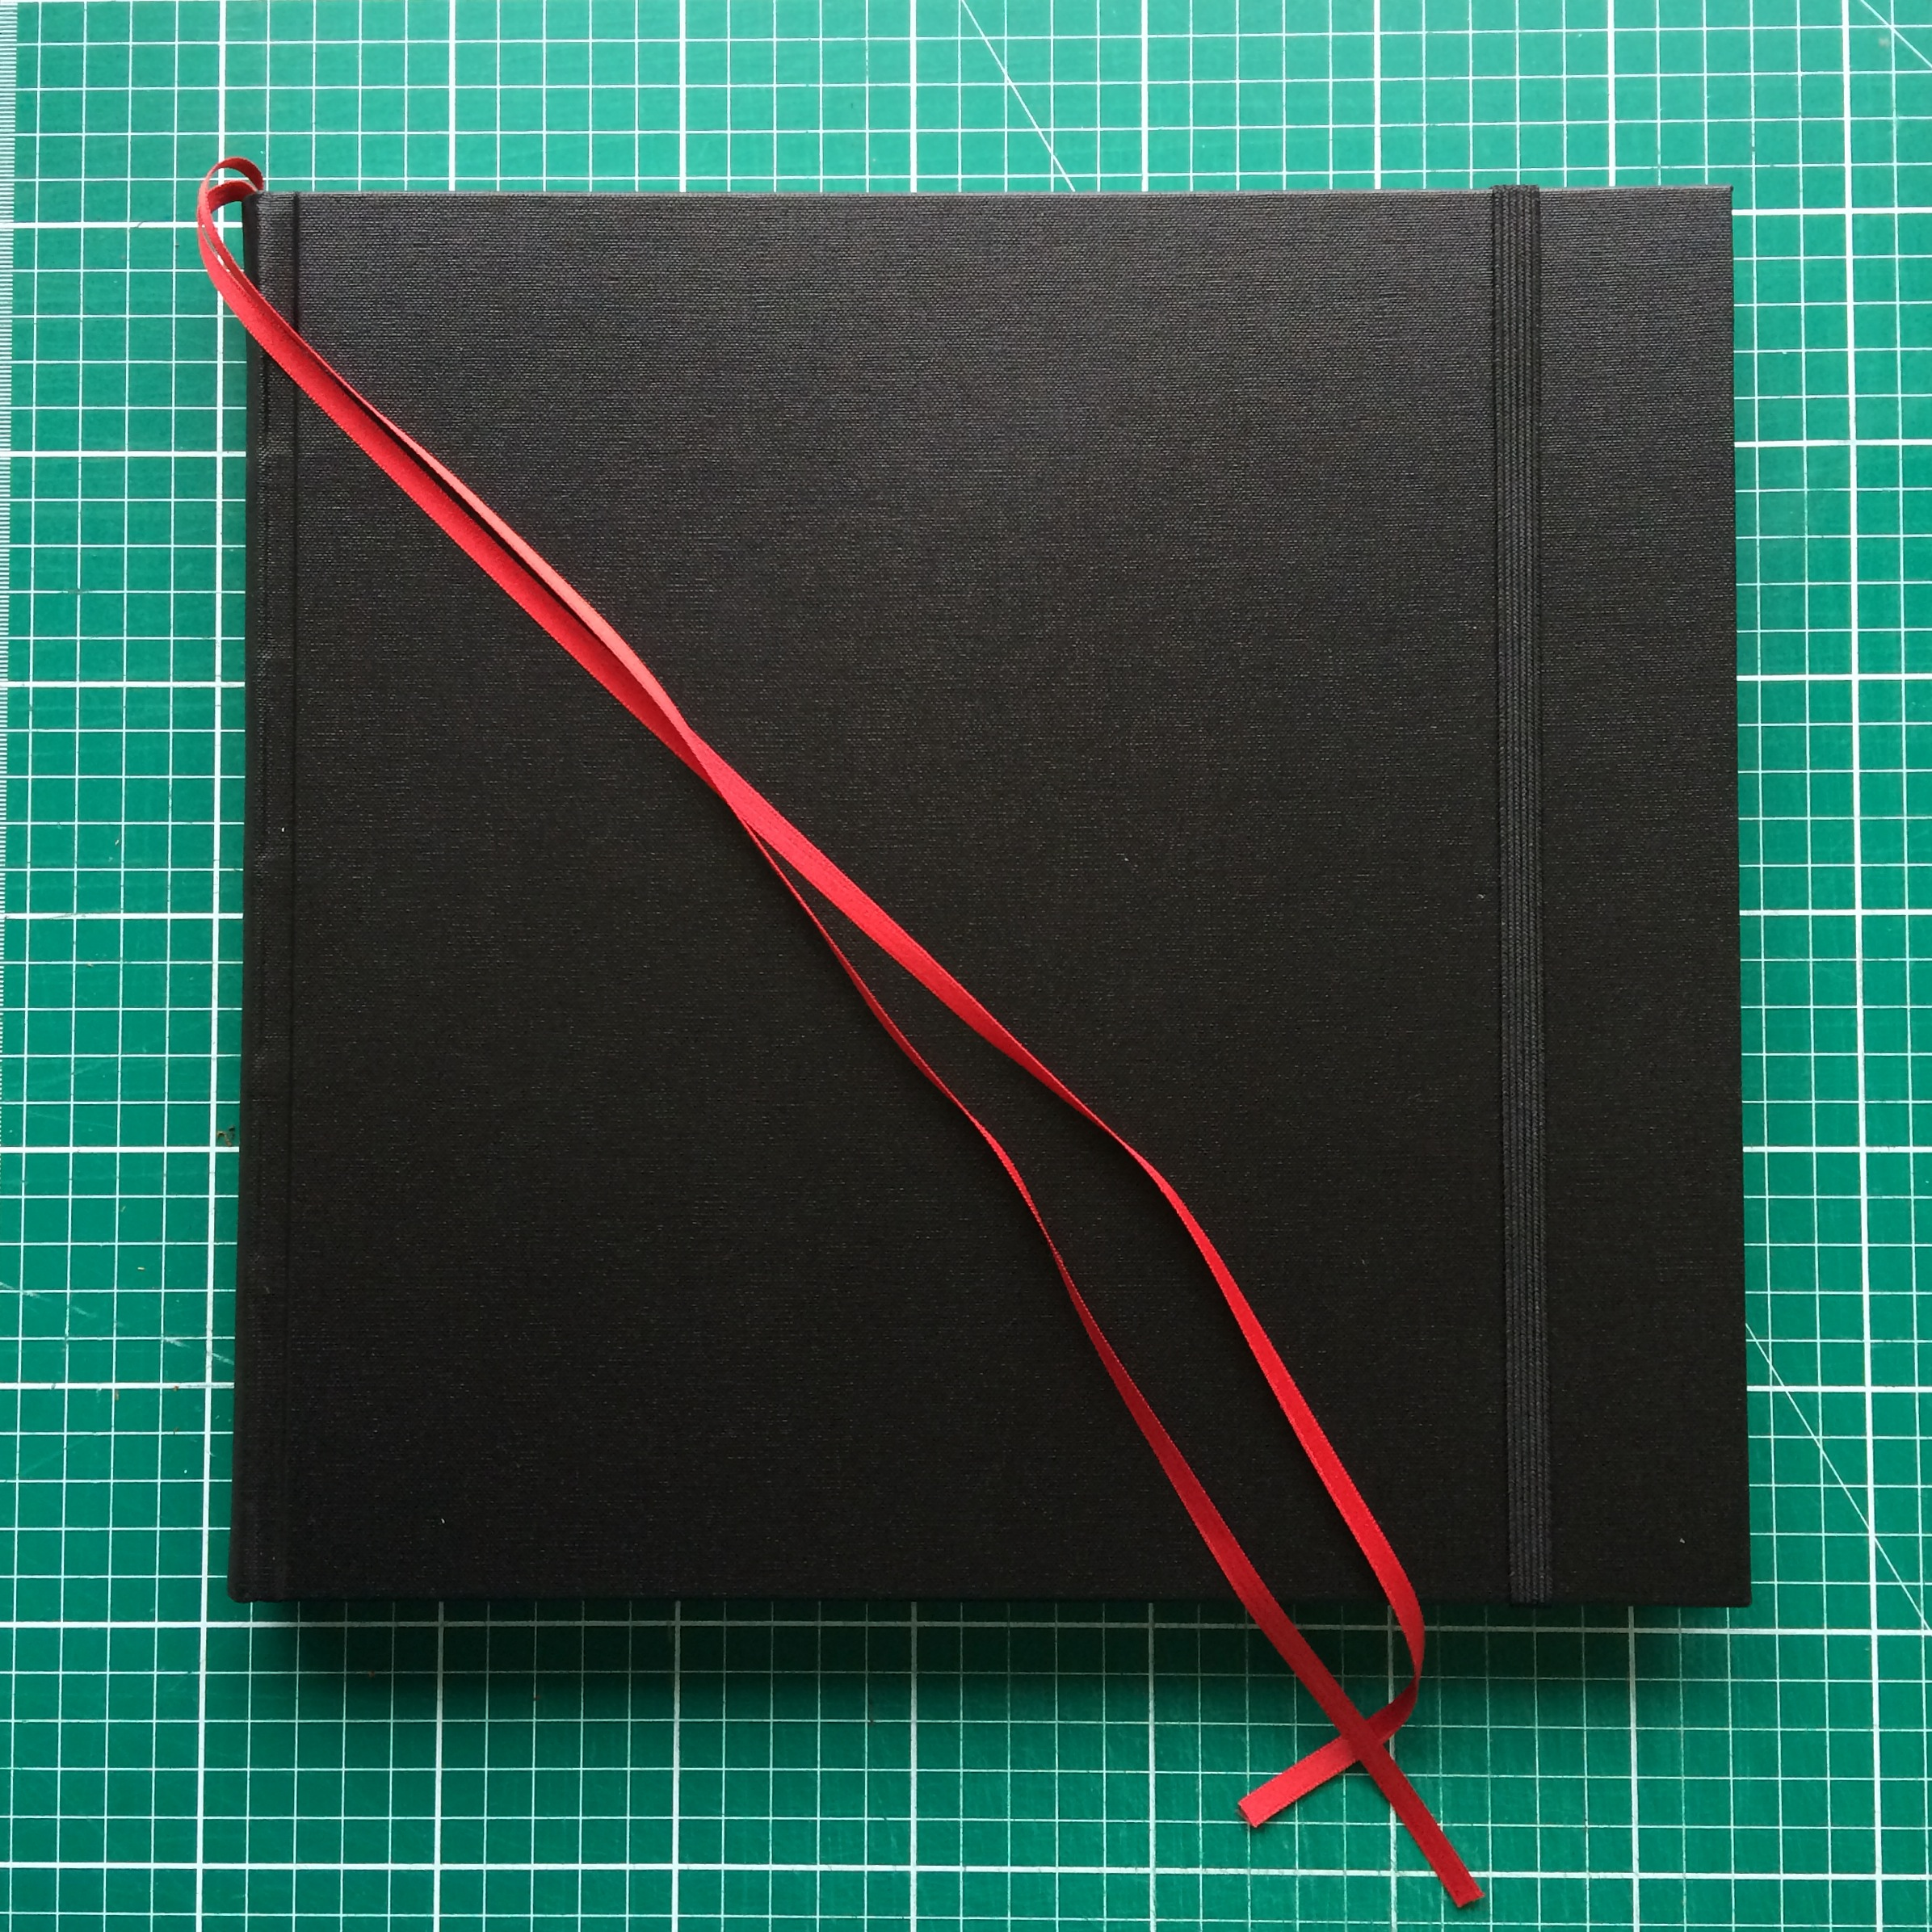 The completed binding with elasticated strap and buckram covering.